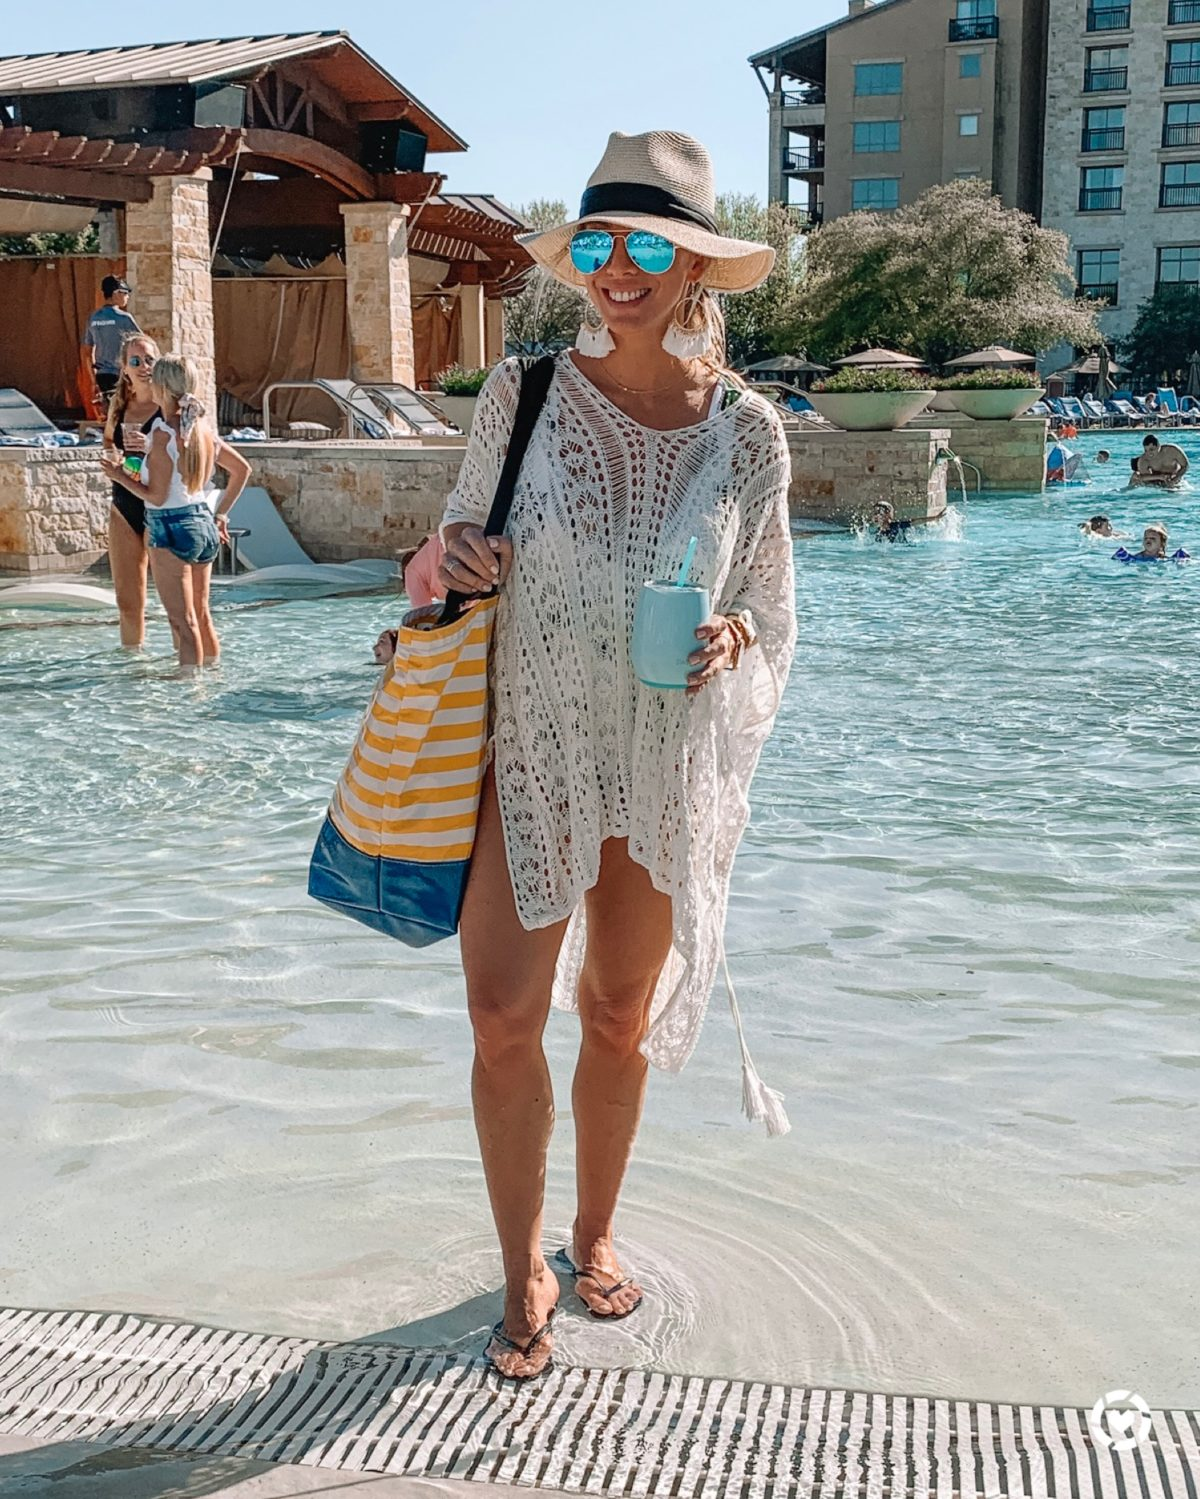 Amazon Fashion Prime Day Haul - Poolside outfit